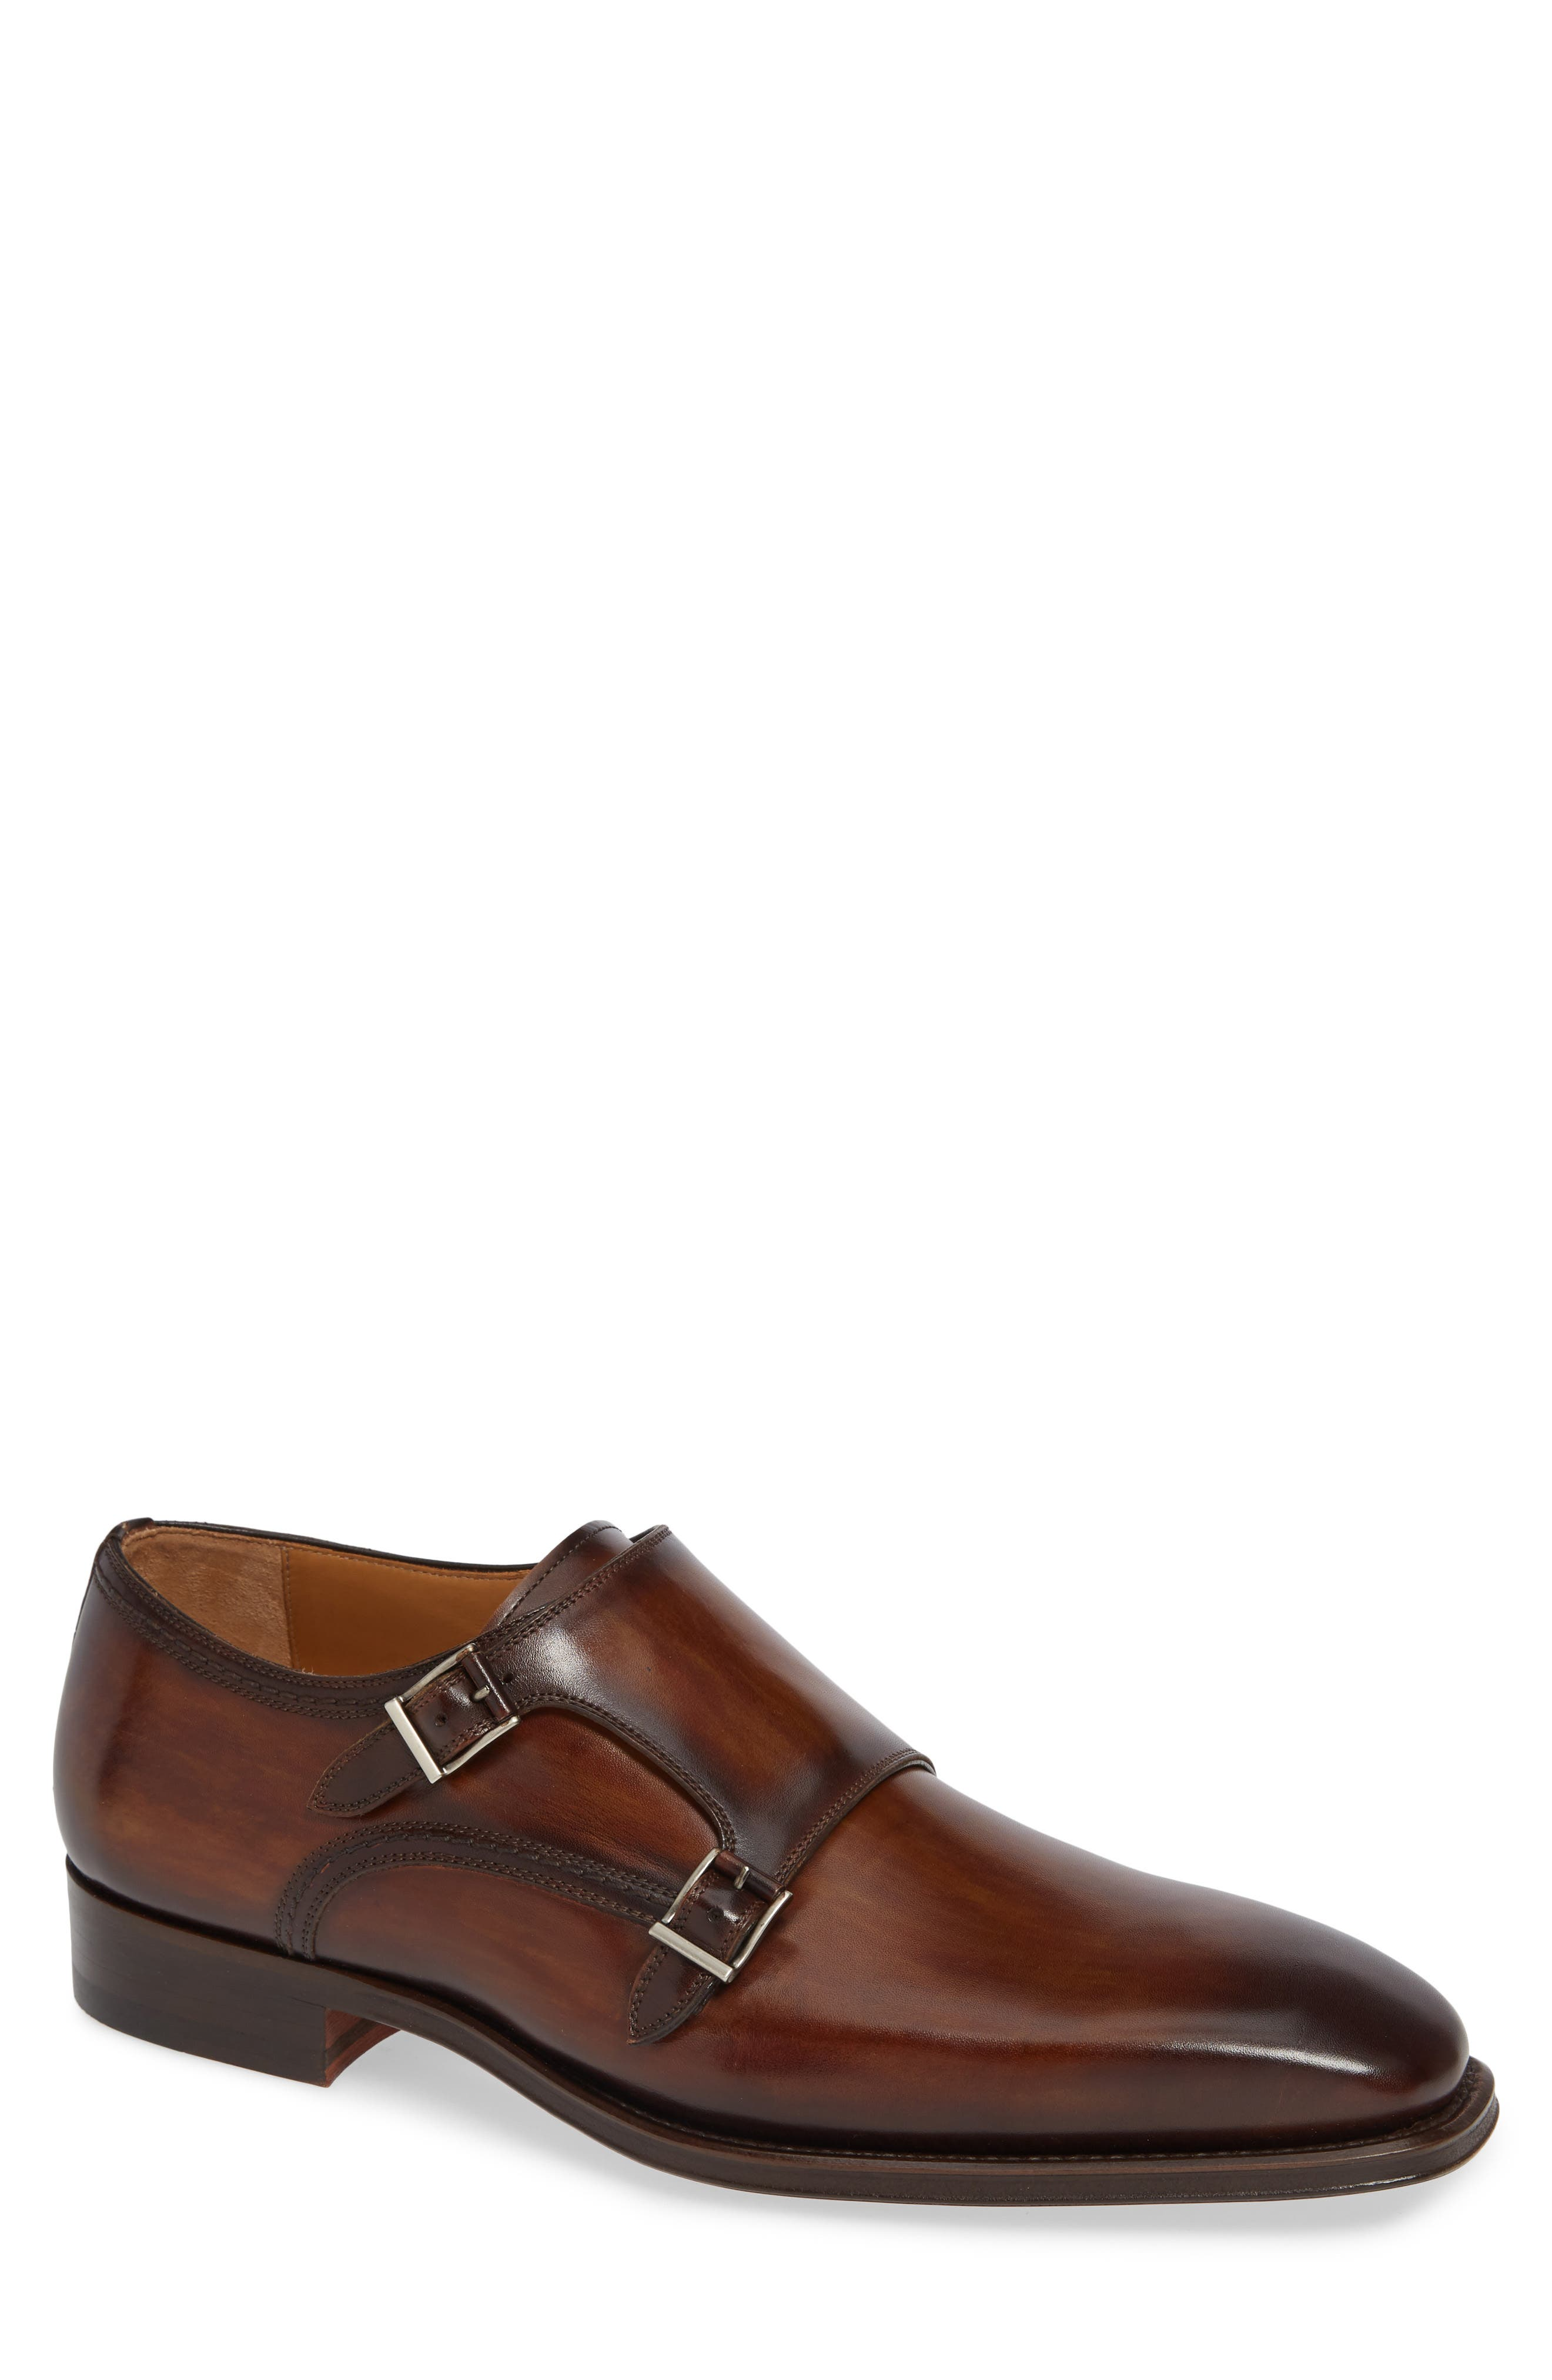 Landon Double Strap Monk Shoe,                         Main,                         color, TOBACCO LEATHER